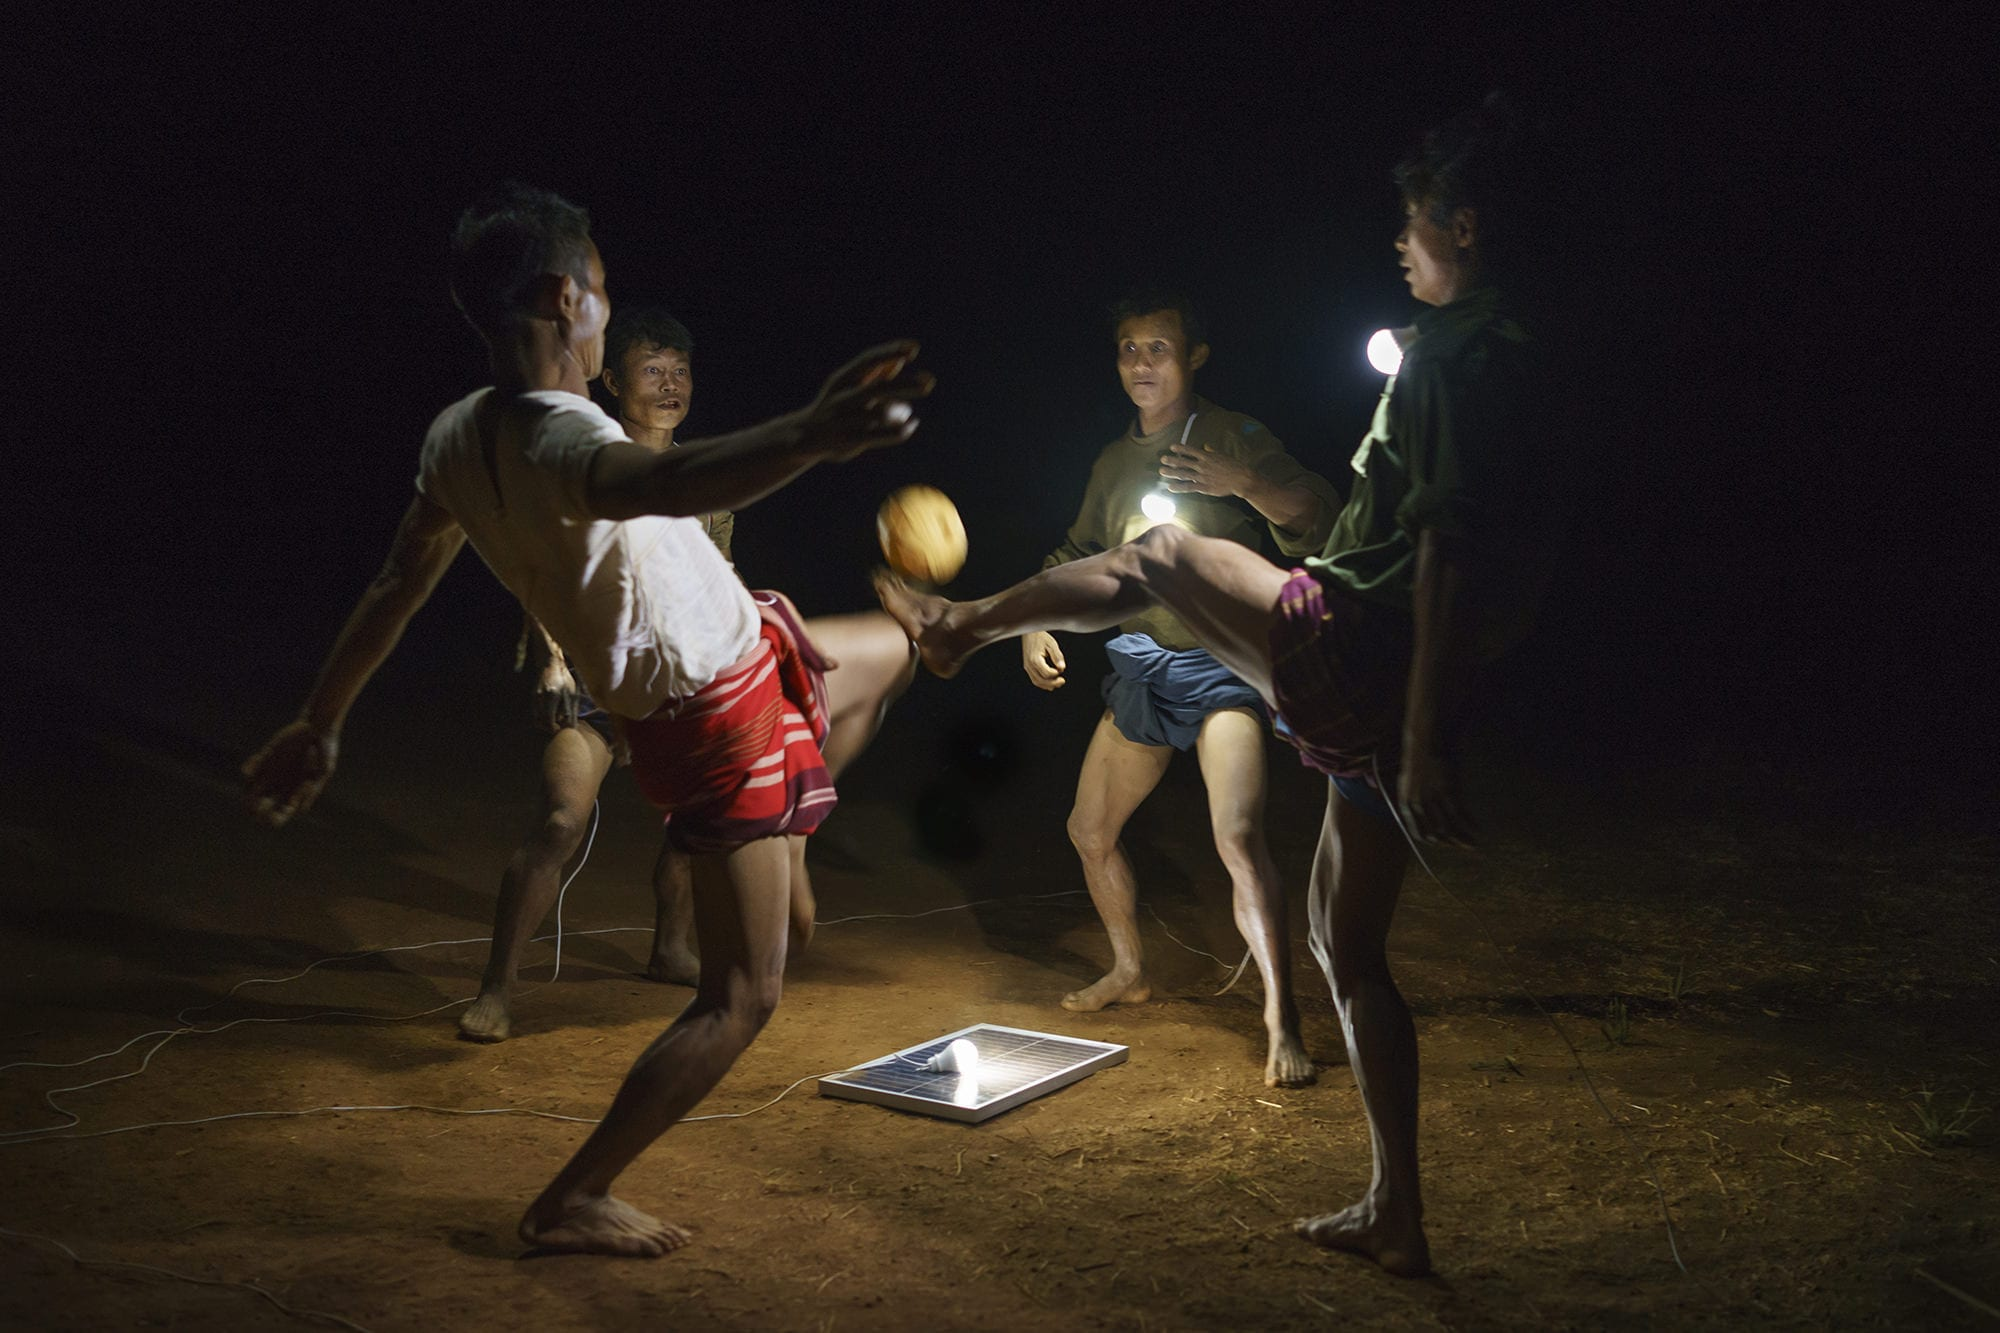 Men playing Chinlone, Myanmar's national sport on a field in Pa Dan Kho Village.